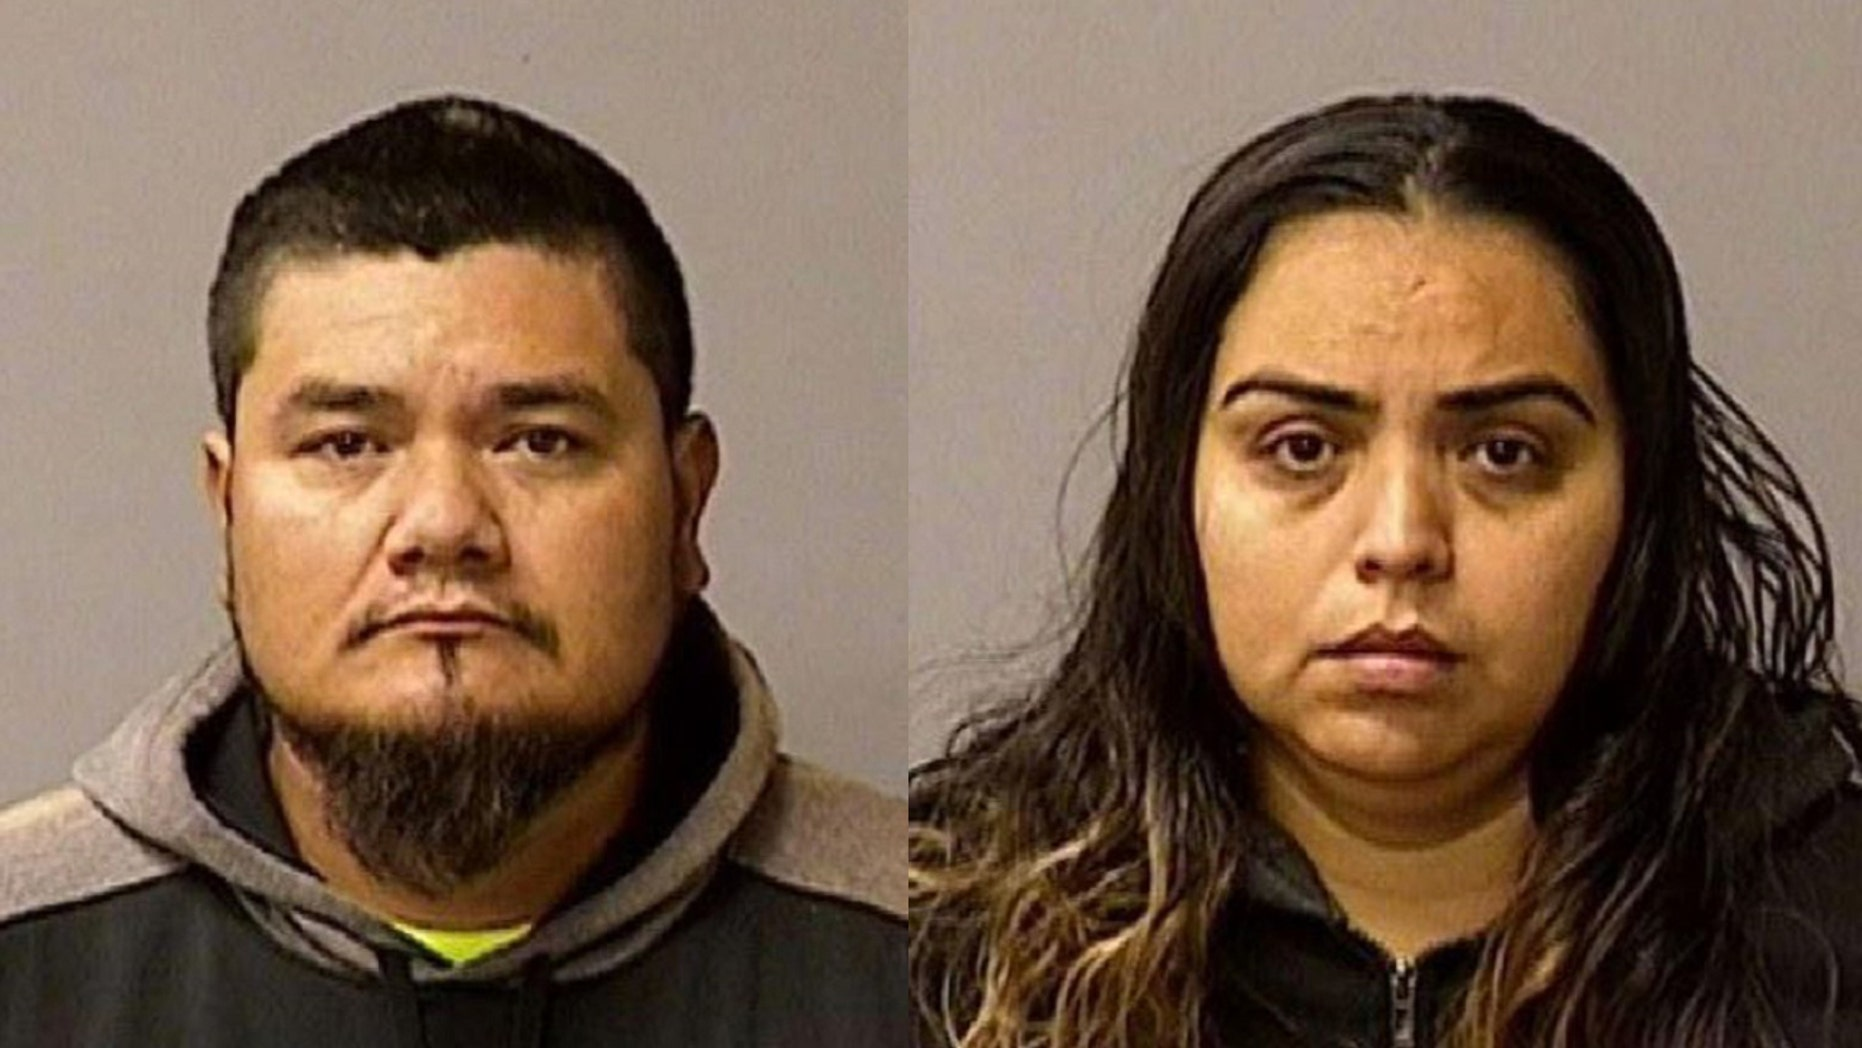 Conrado Virgen Mendoza, 34, left, by Chowchilla and Ana Leyde Cervantes, 30, by Newman, were arrested on Friday in connection with the death of a Newman Police Corps.